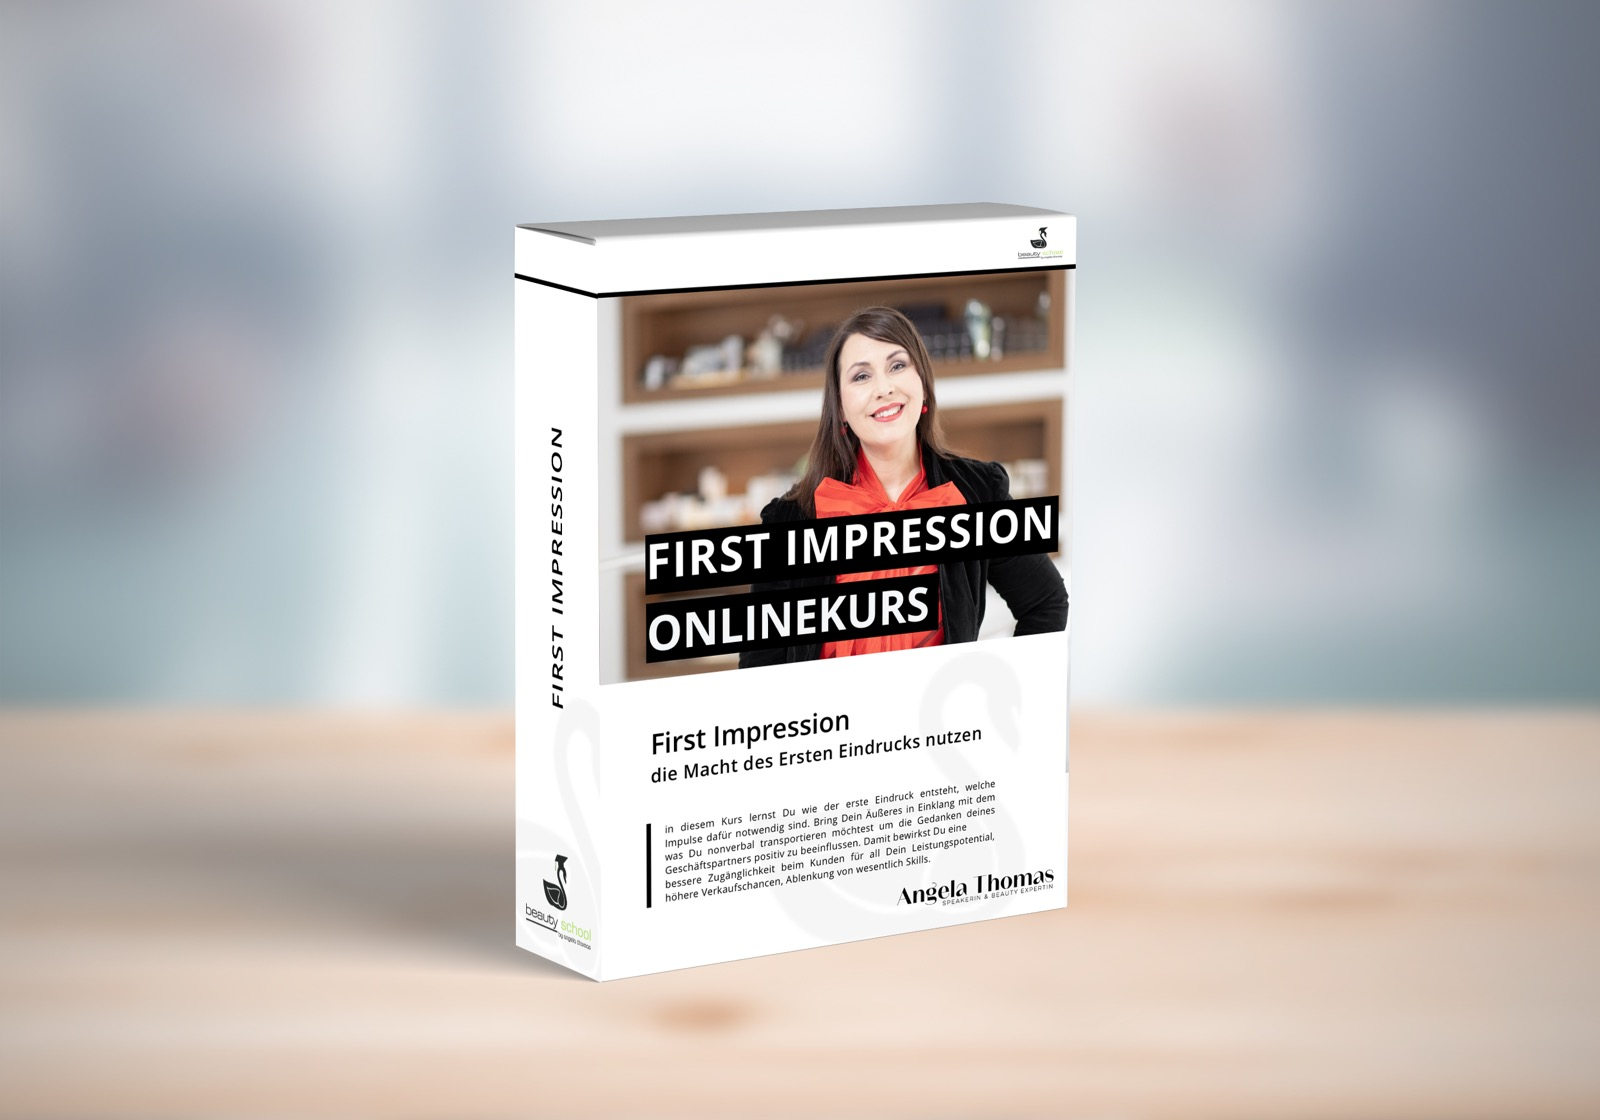 FIRST IMPRESSION ONLINEKURS